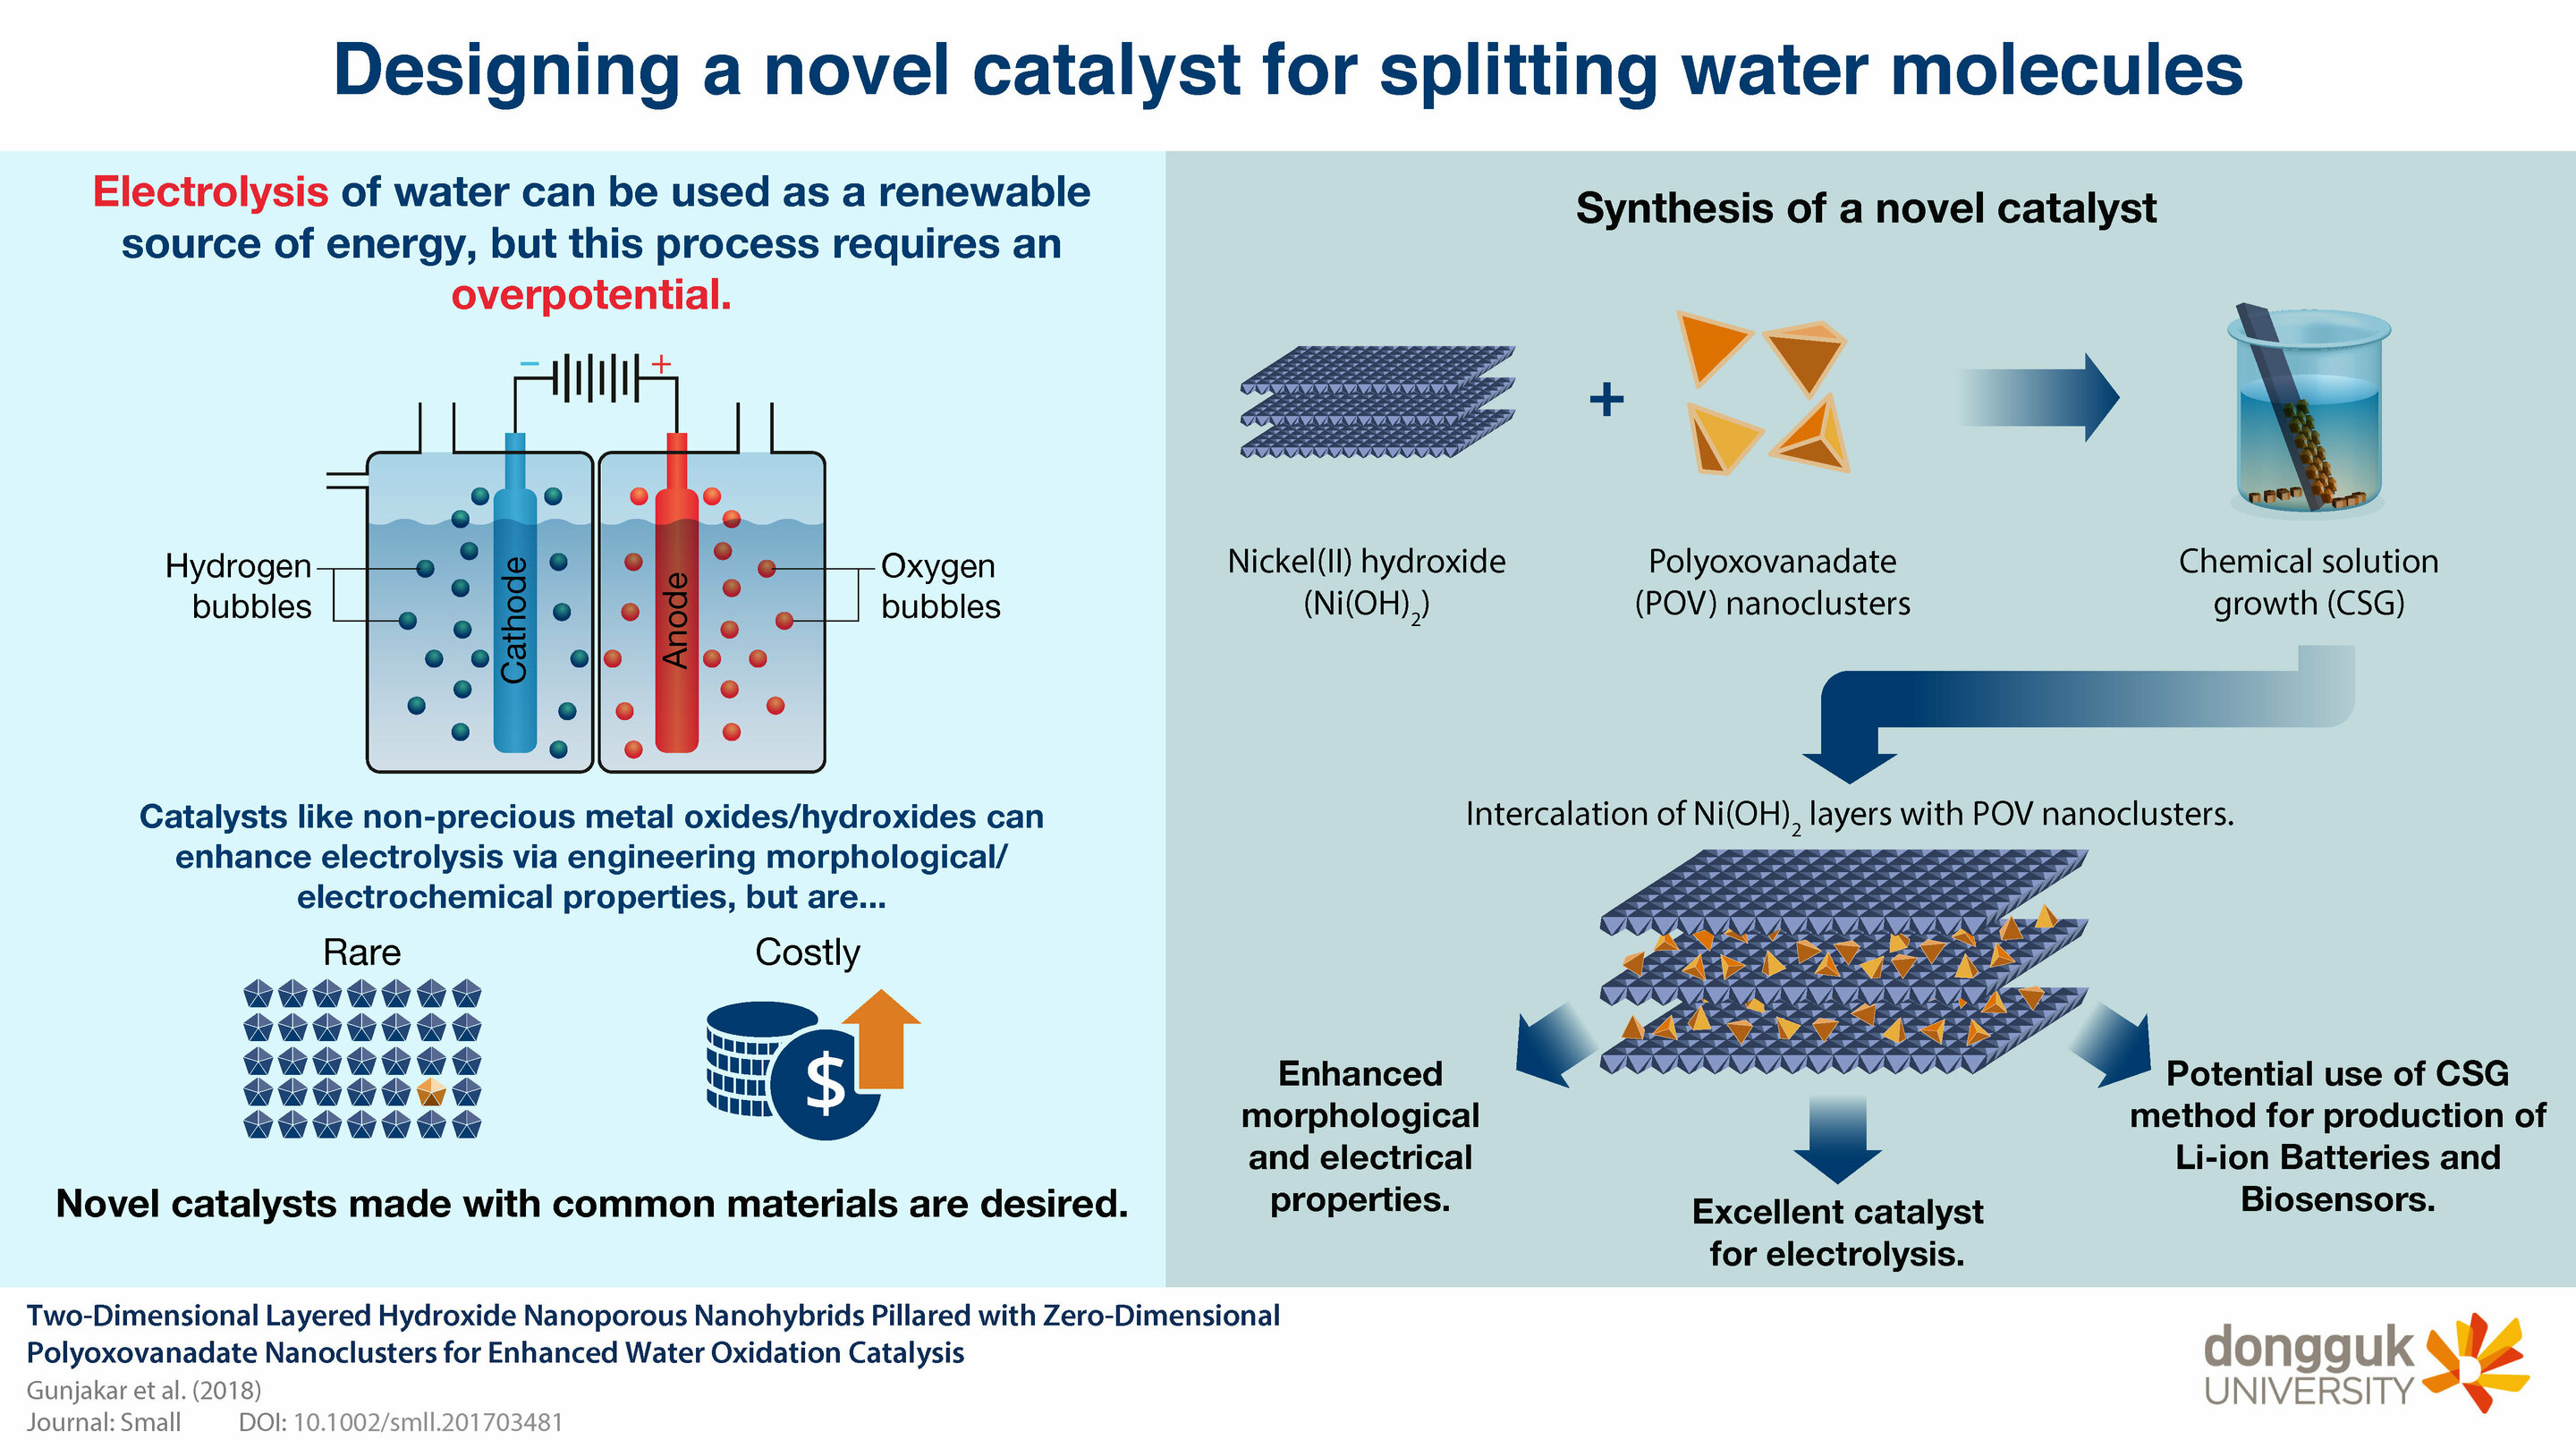 A powerful catalyst for electrolysis of water that could help harness